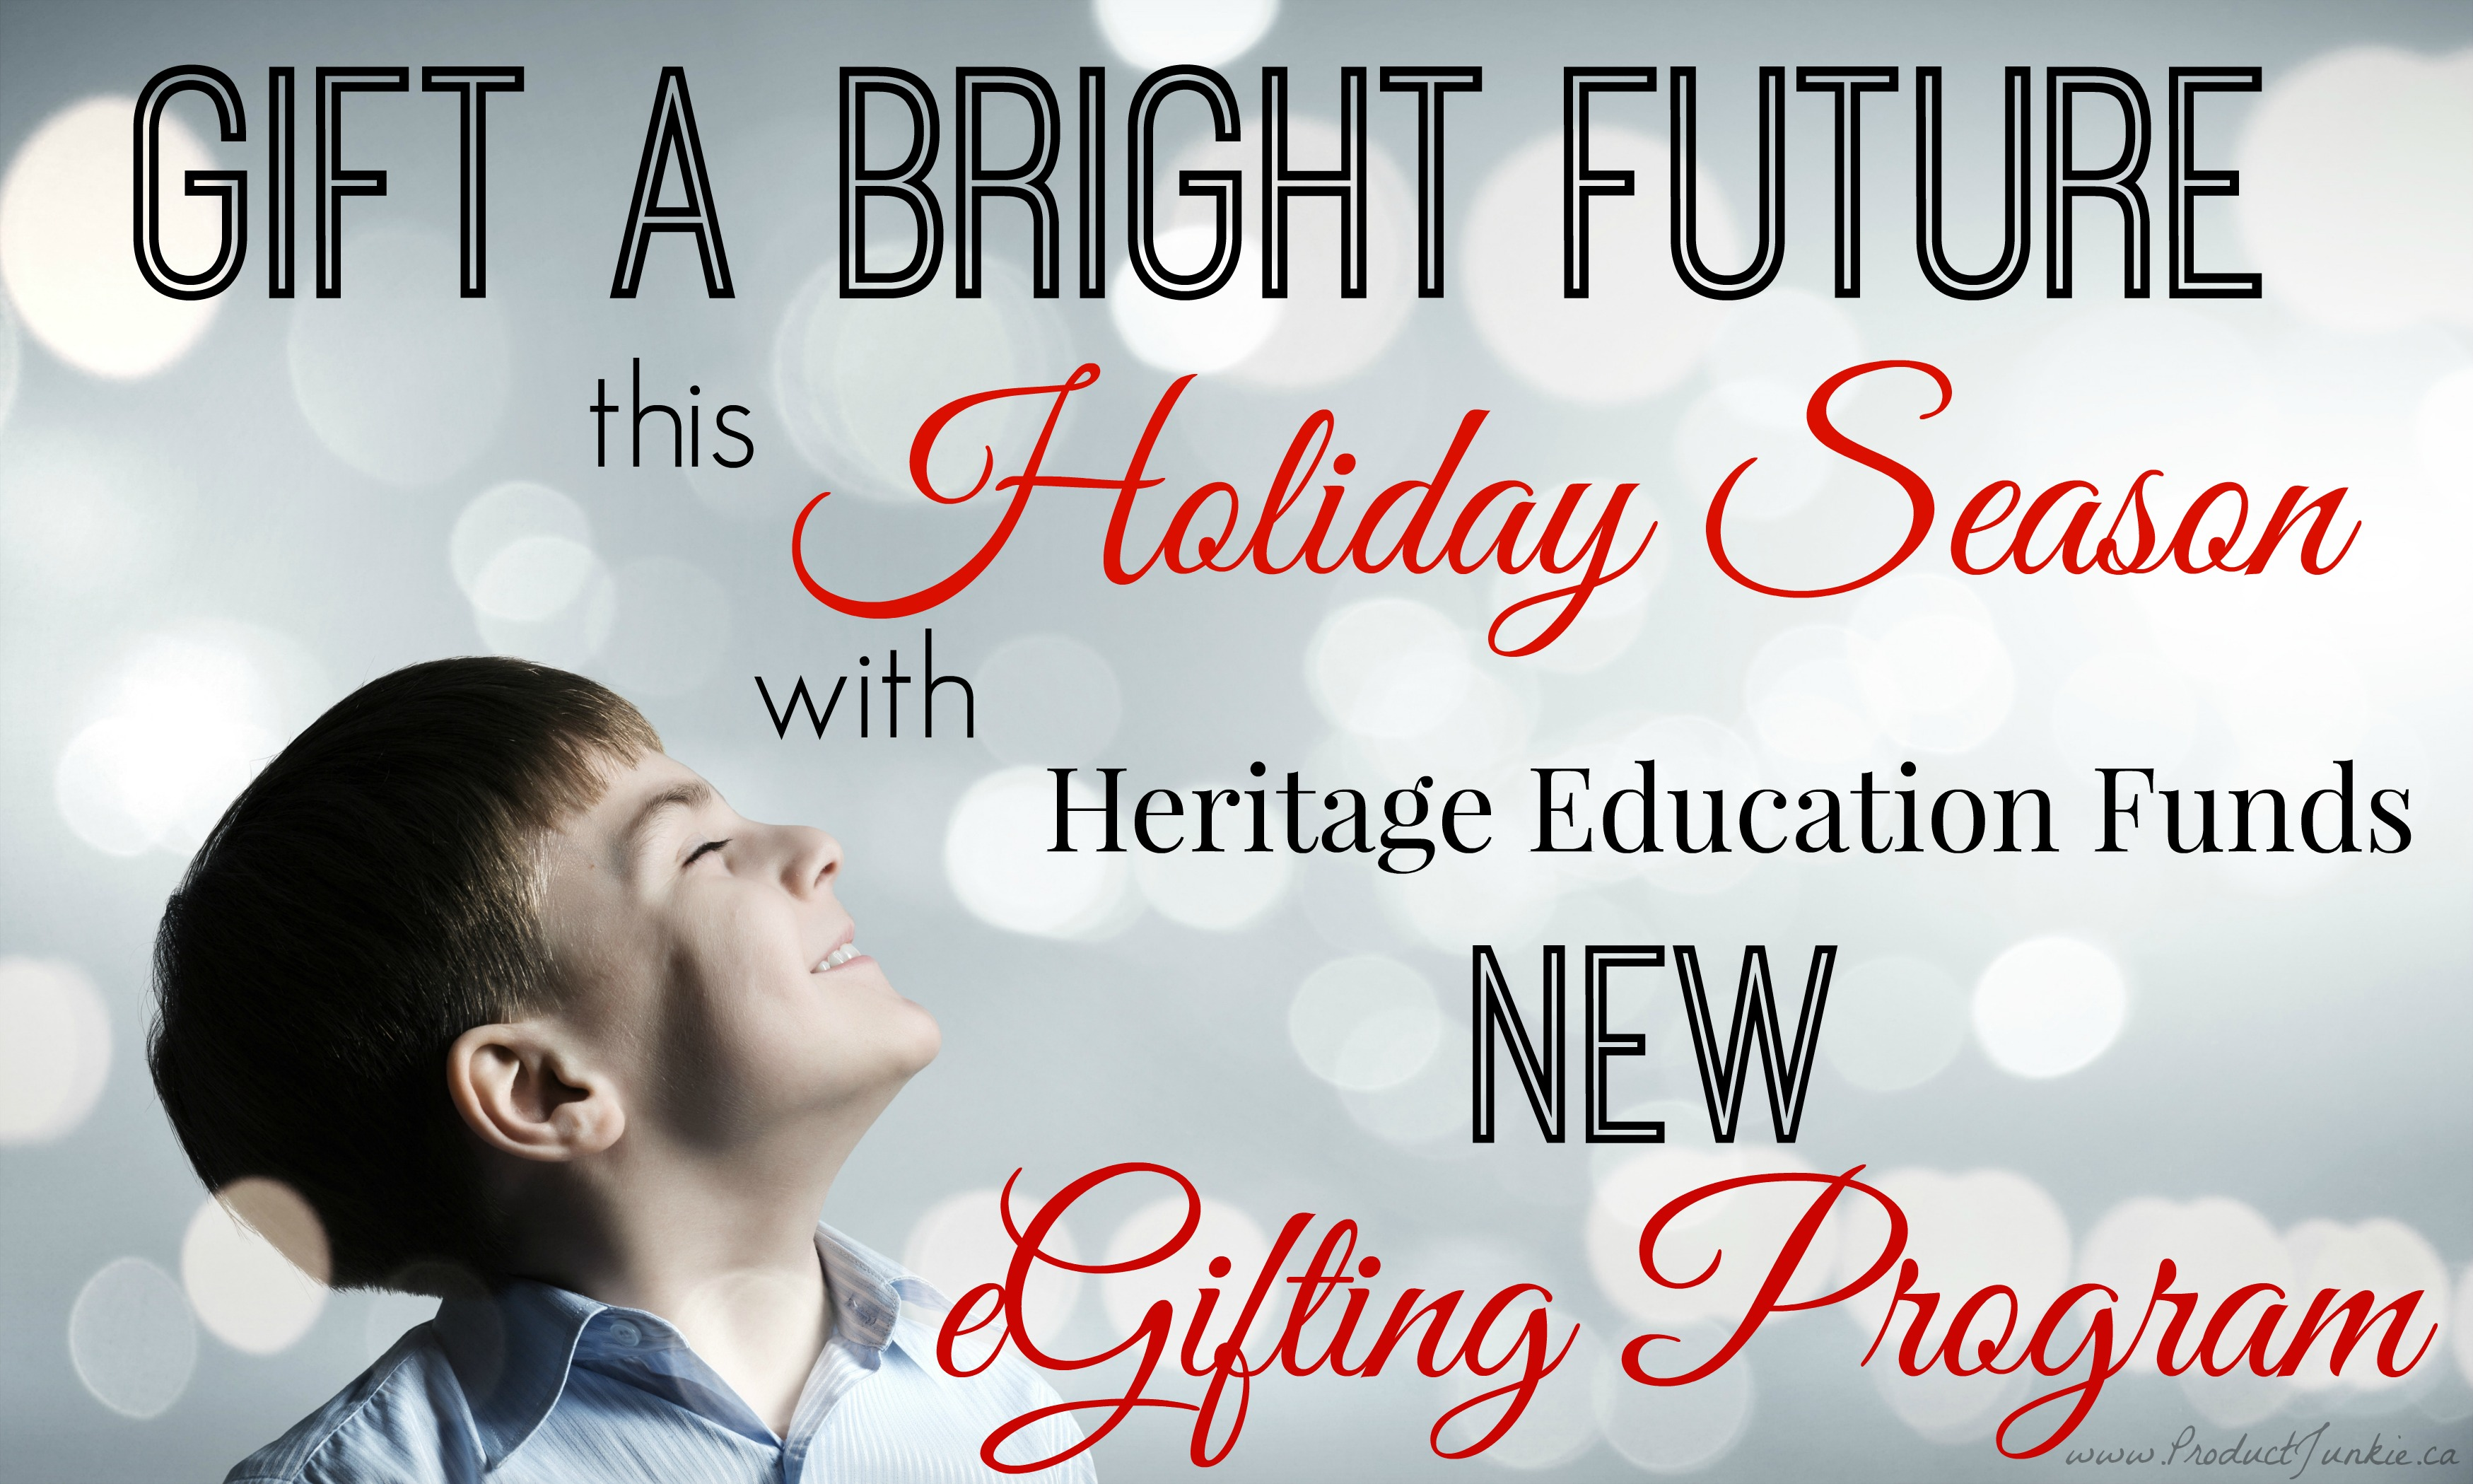 Heritage egifting program